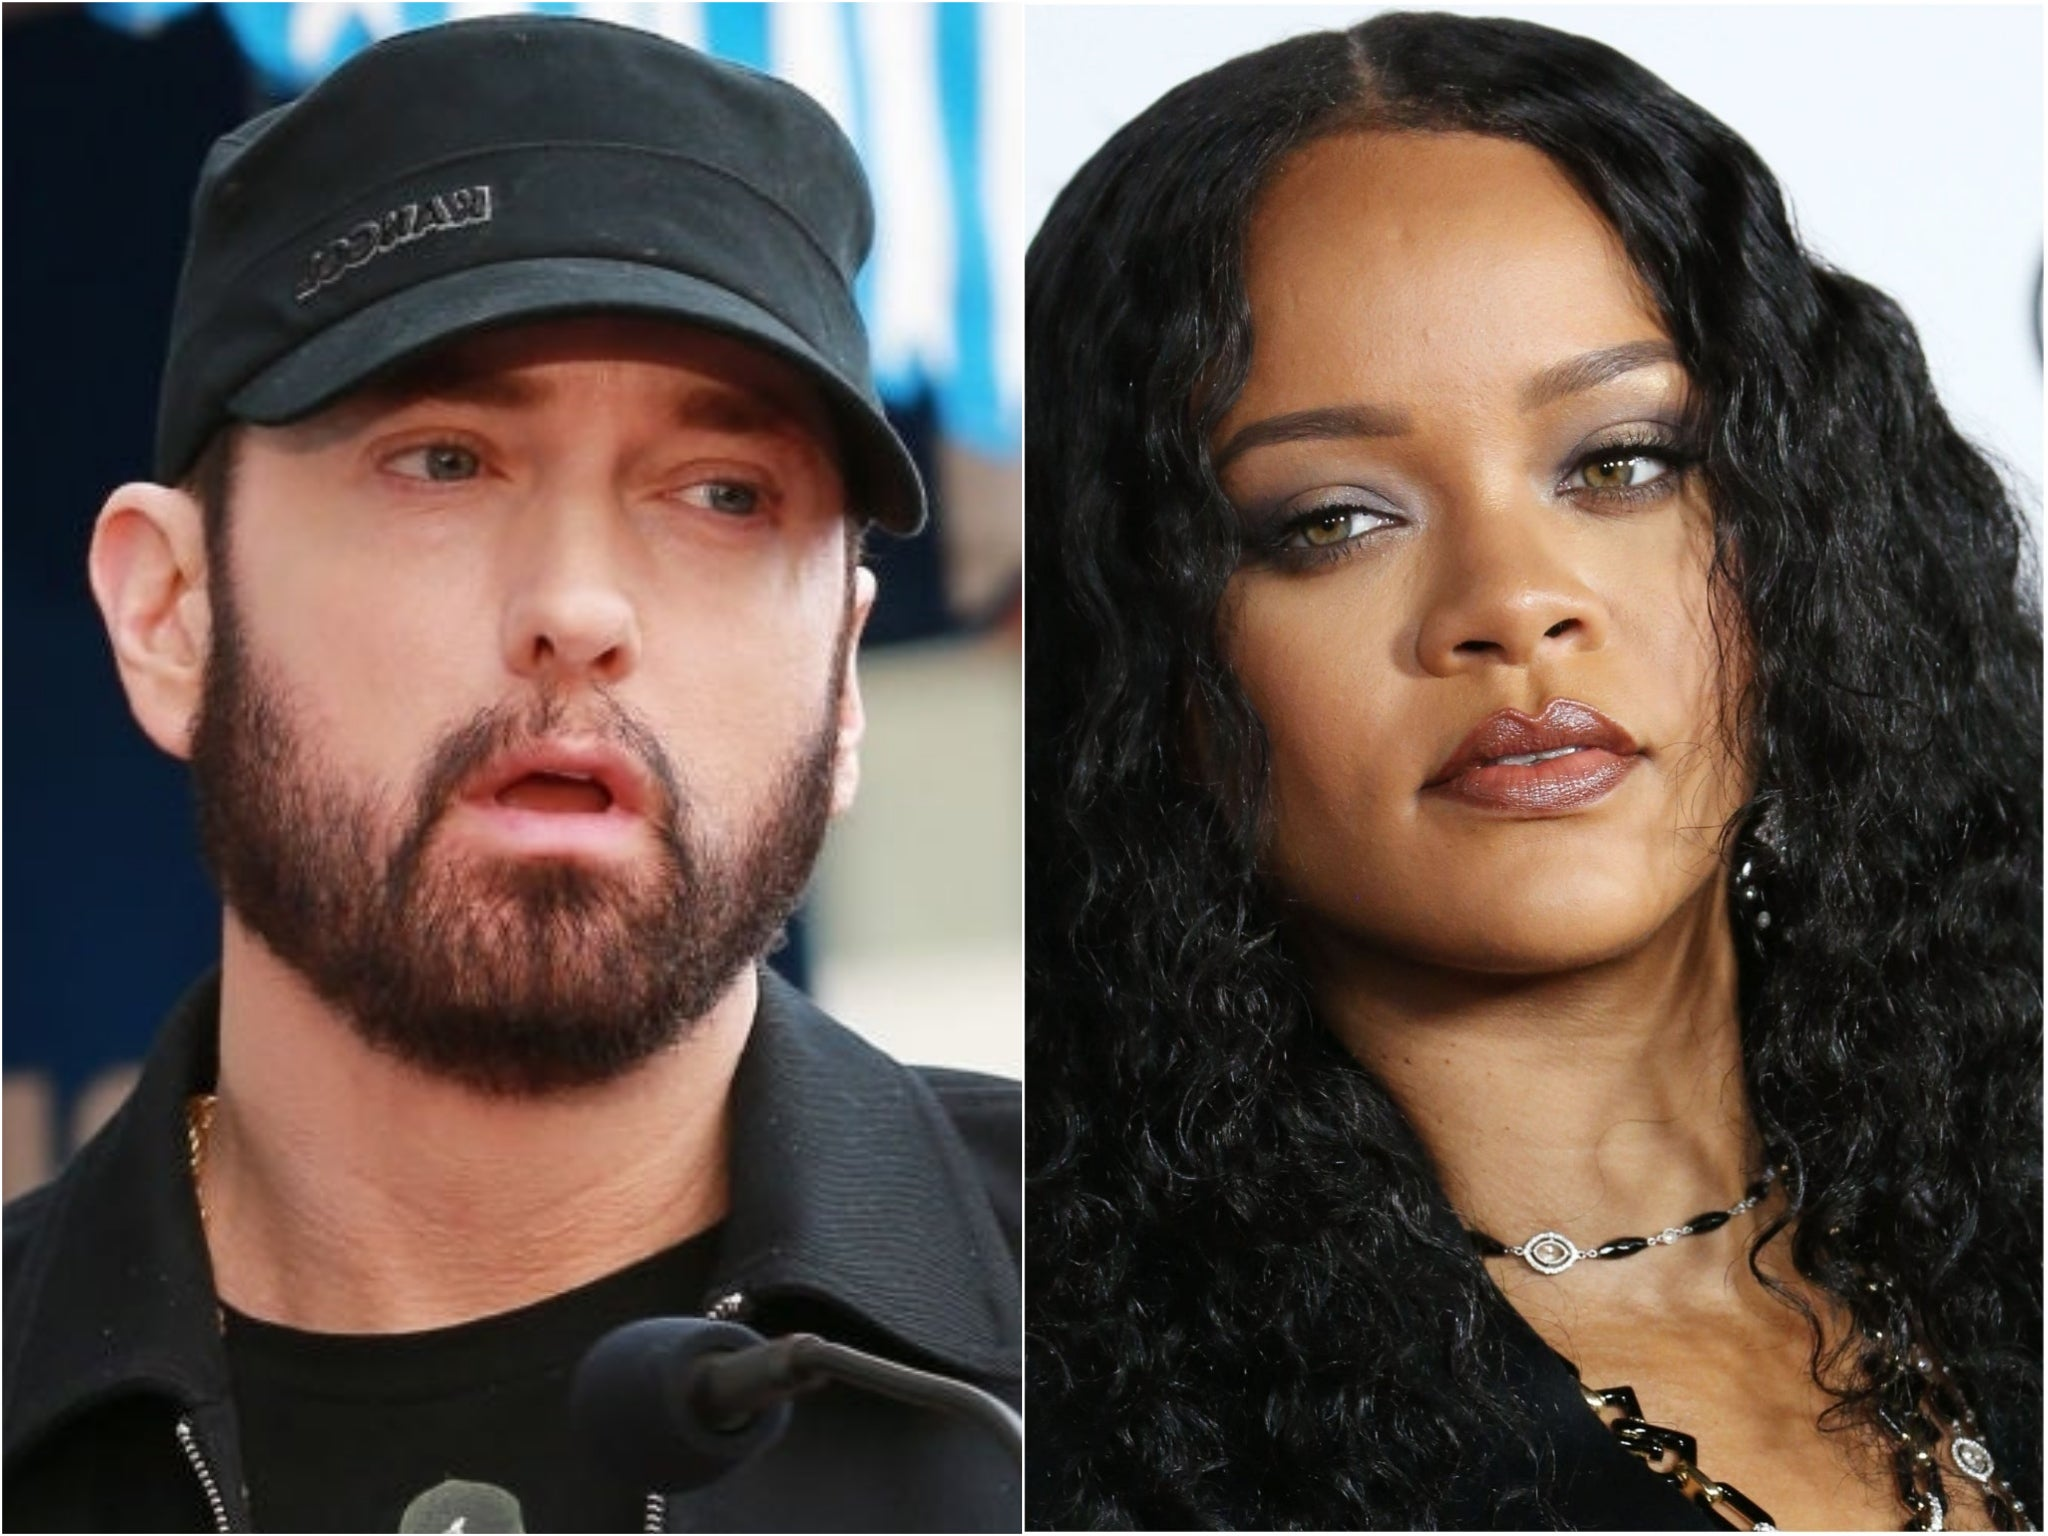 Eminem opens up about controversial Rihanna lyrics after apologising on new album: 'I said it cause it rhymed'